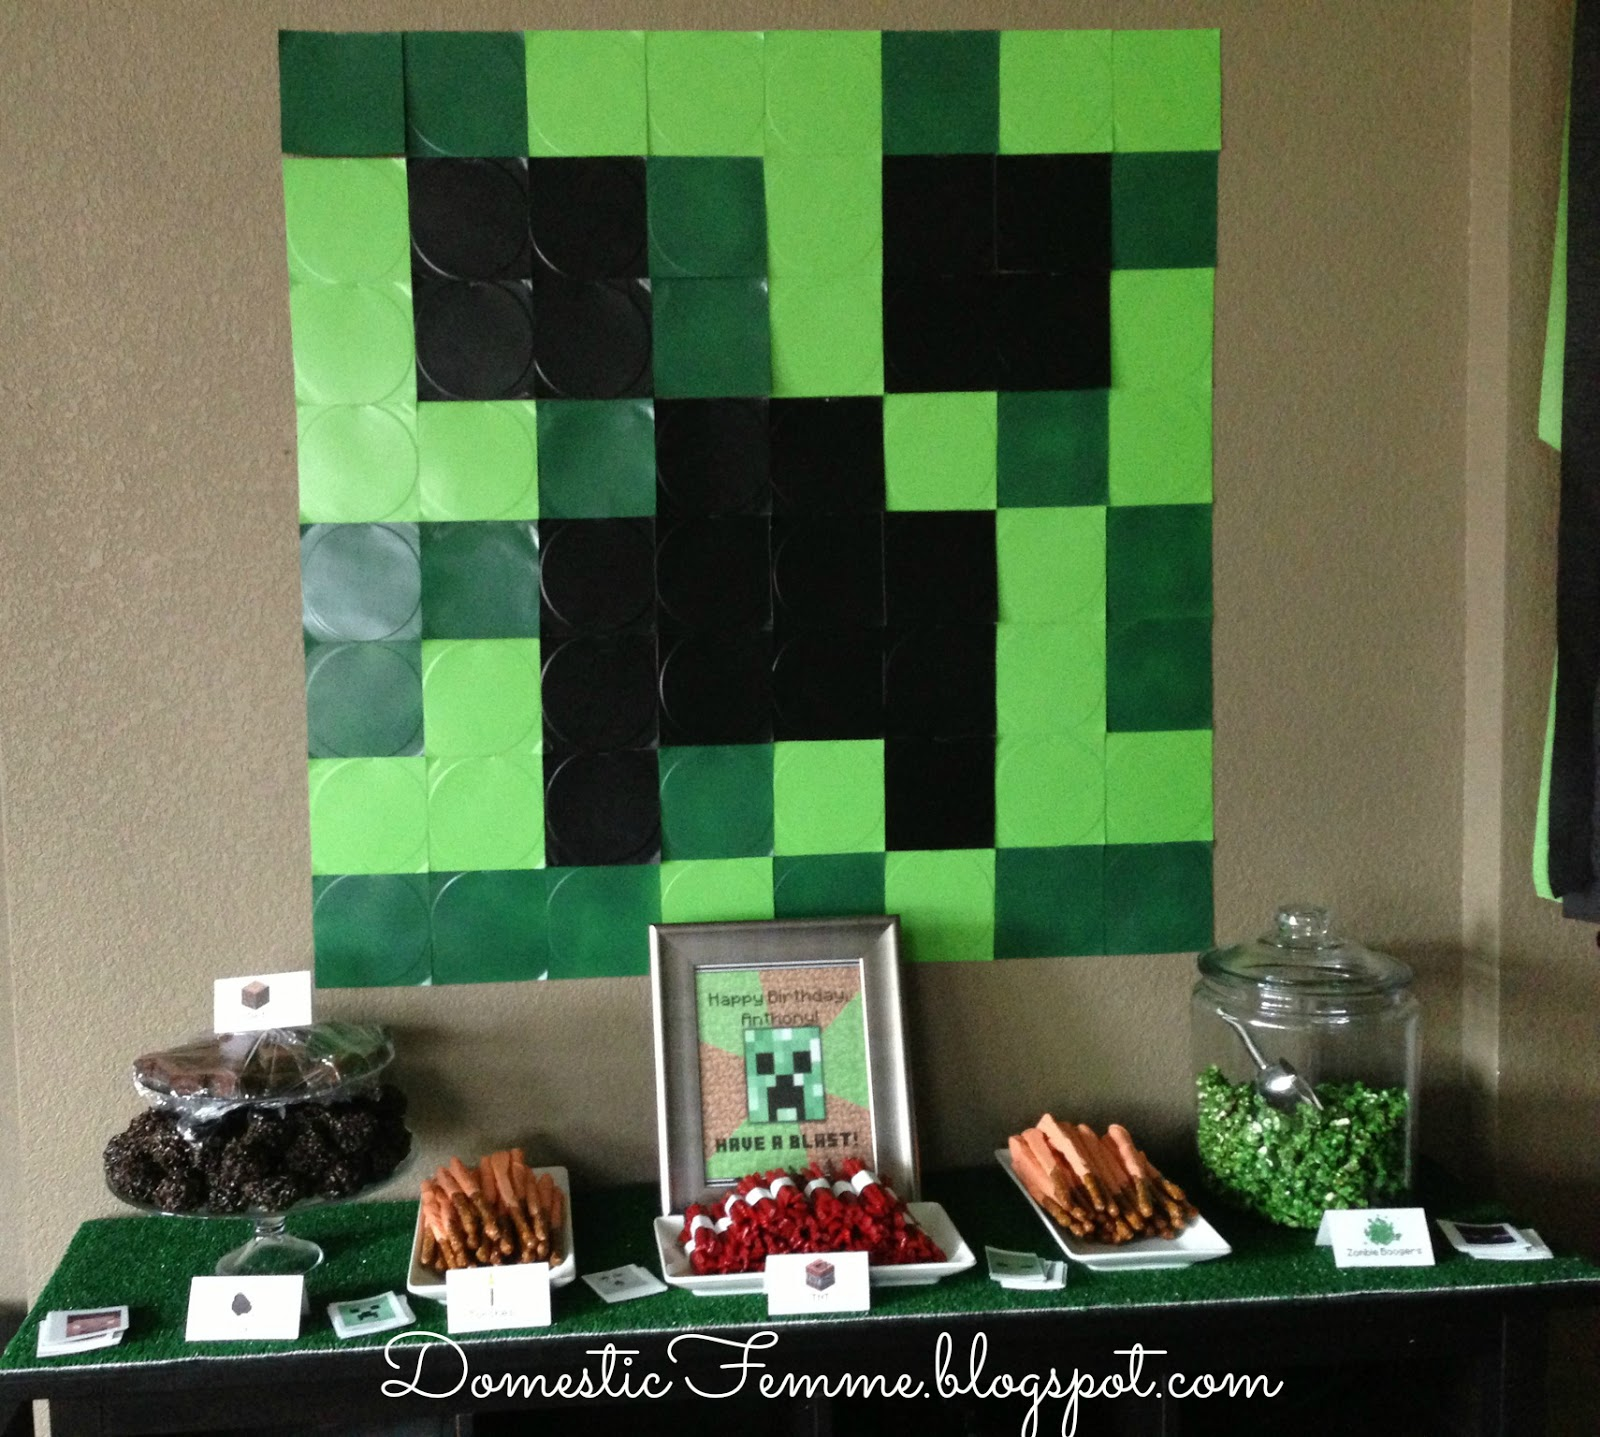 domestic femme minecraft birthday party. Black Bedroom Furniture Sets. Home Design Ideas